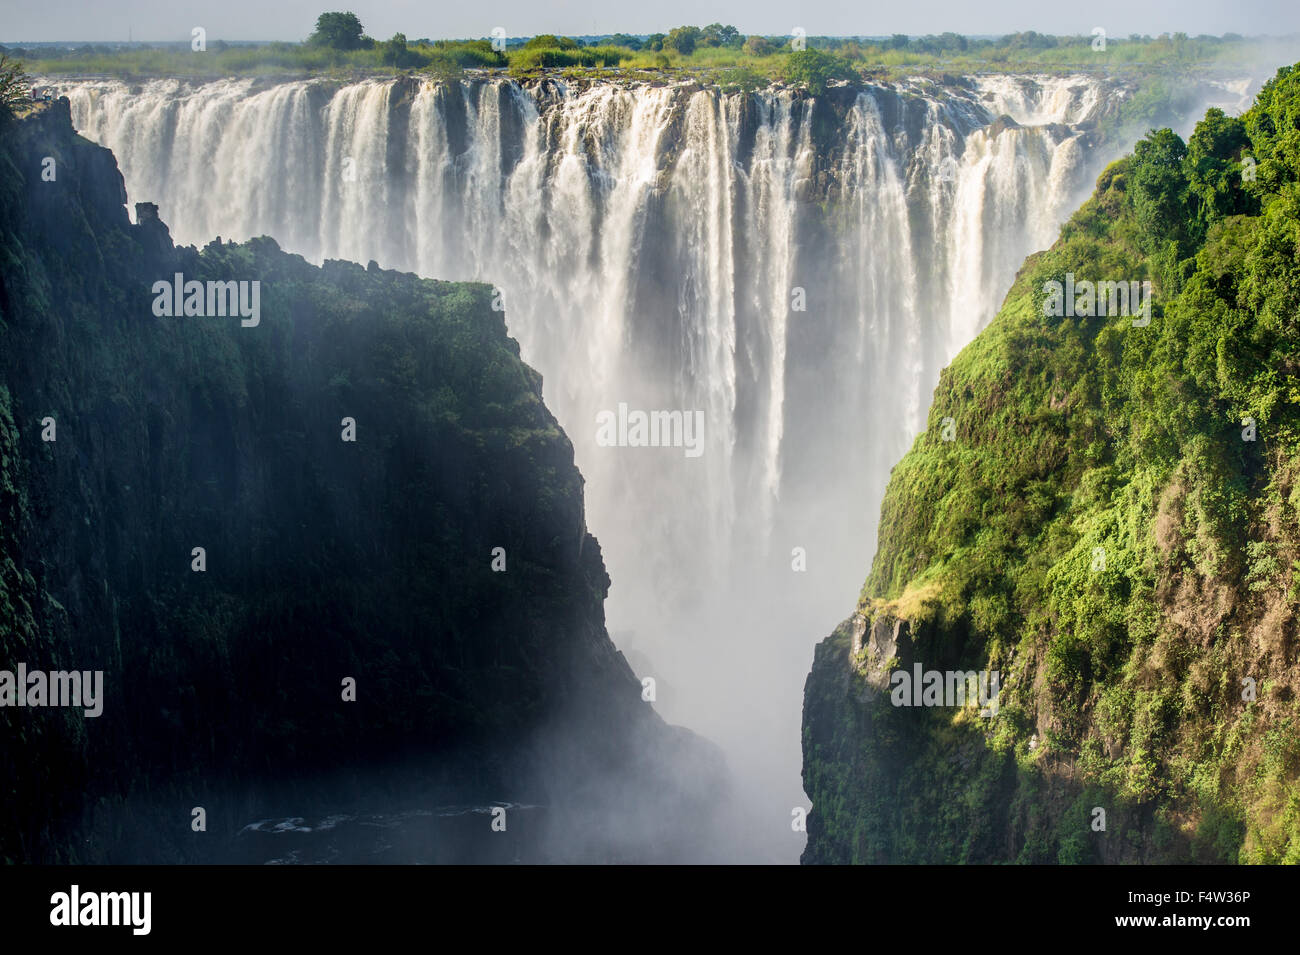 LIVINGSTONE, ZAMBIA, AFRICA - Victoria Falls (Mosi-oa-Tunya) , Worlds largest waterfall , on the Zambezi River - Stock Image